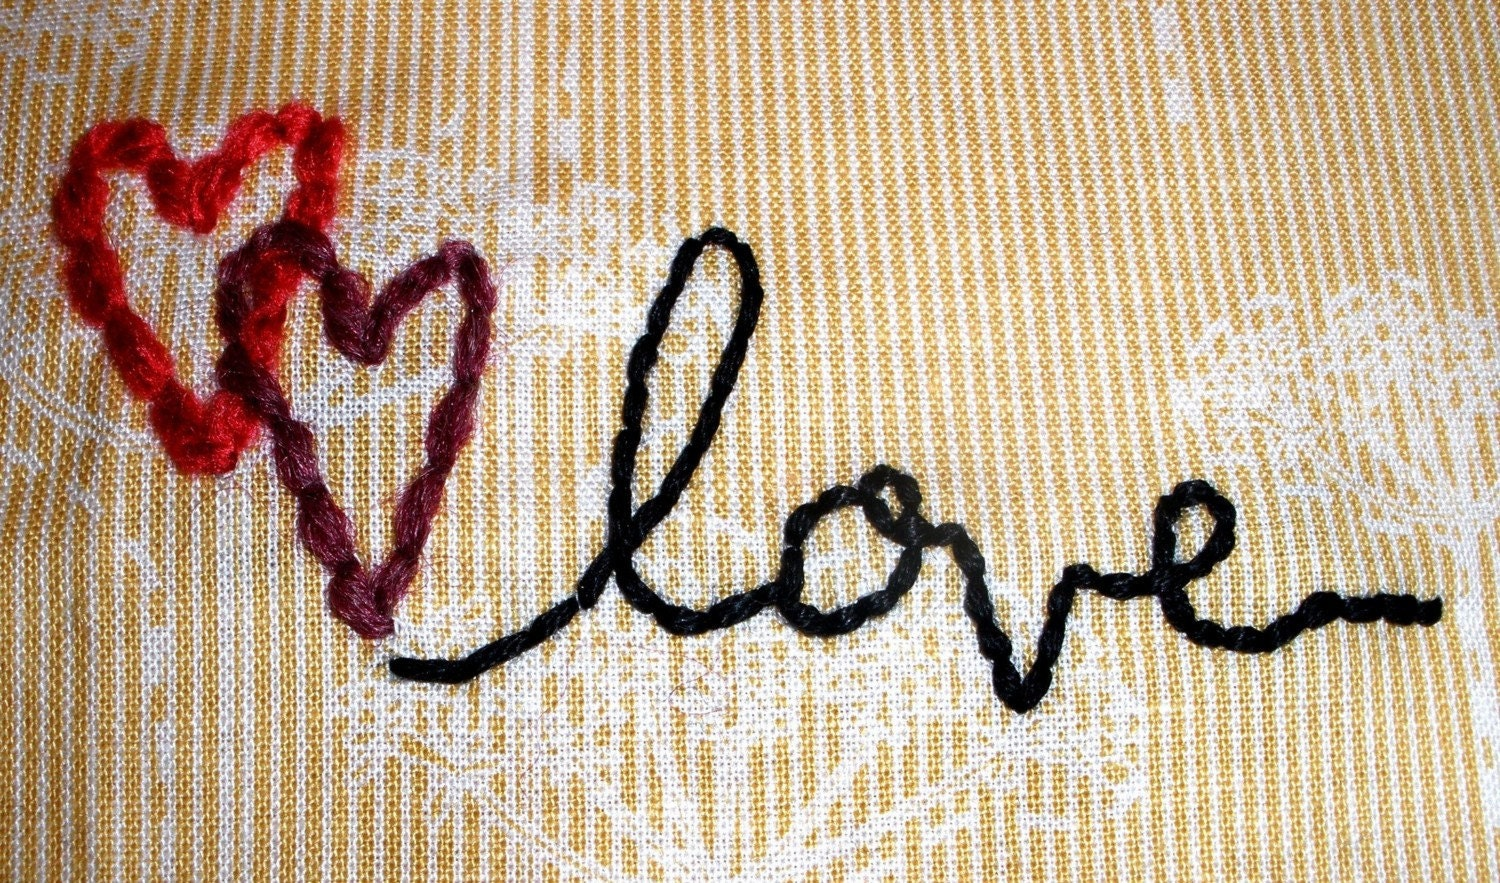 You and Me Embroidery Patterns